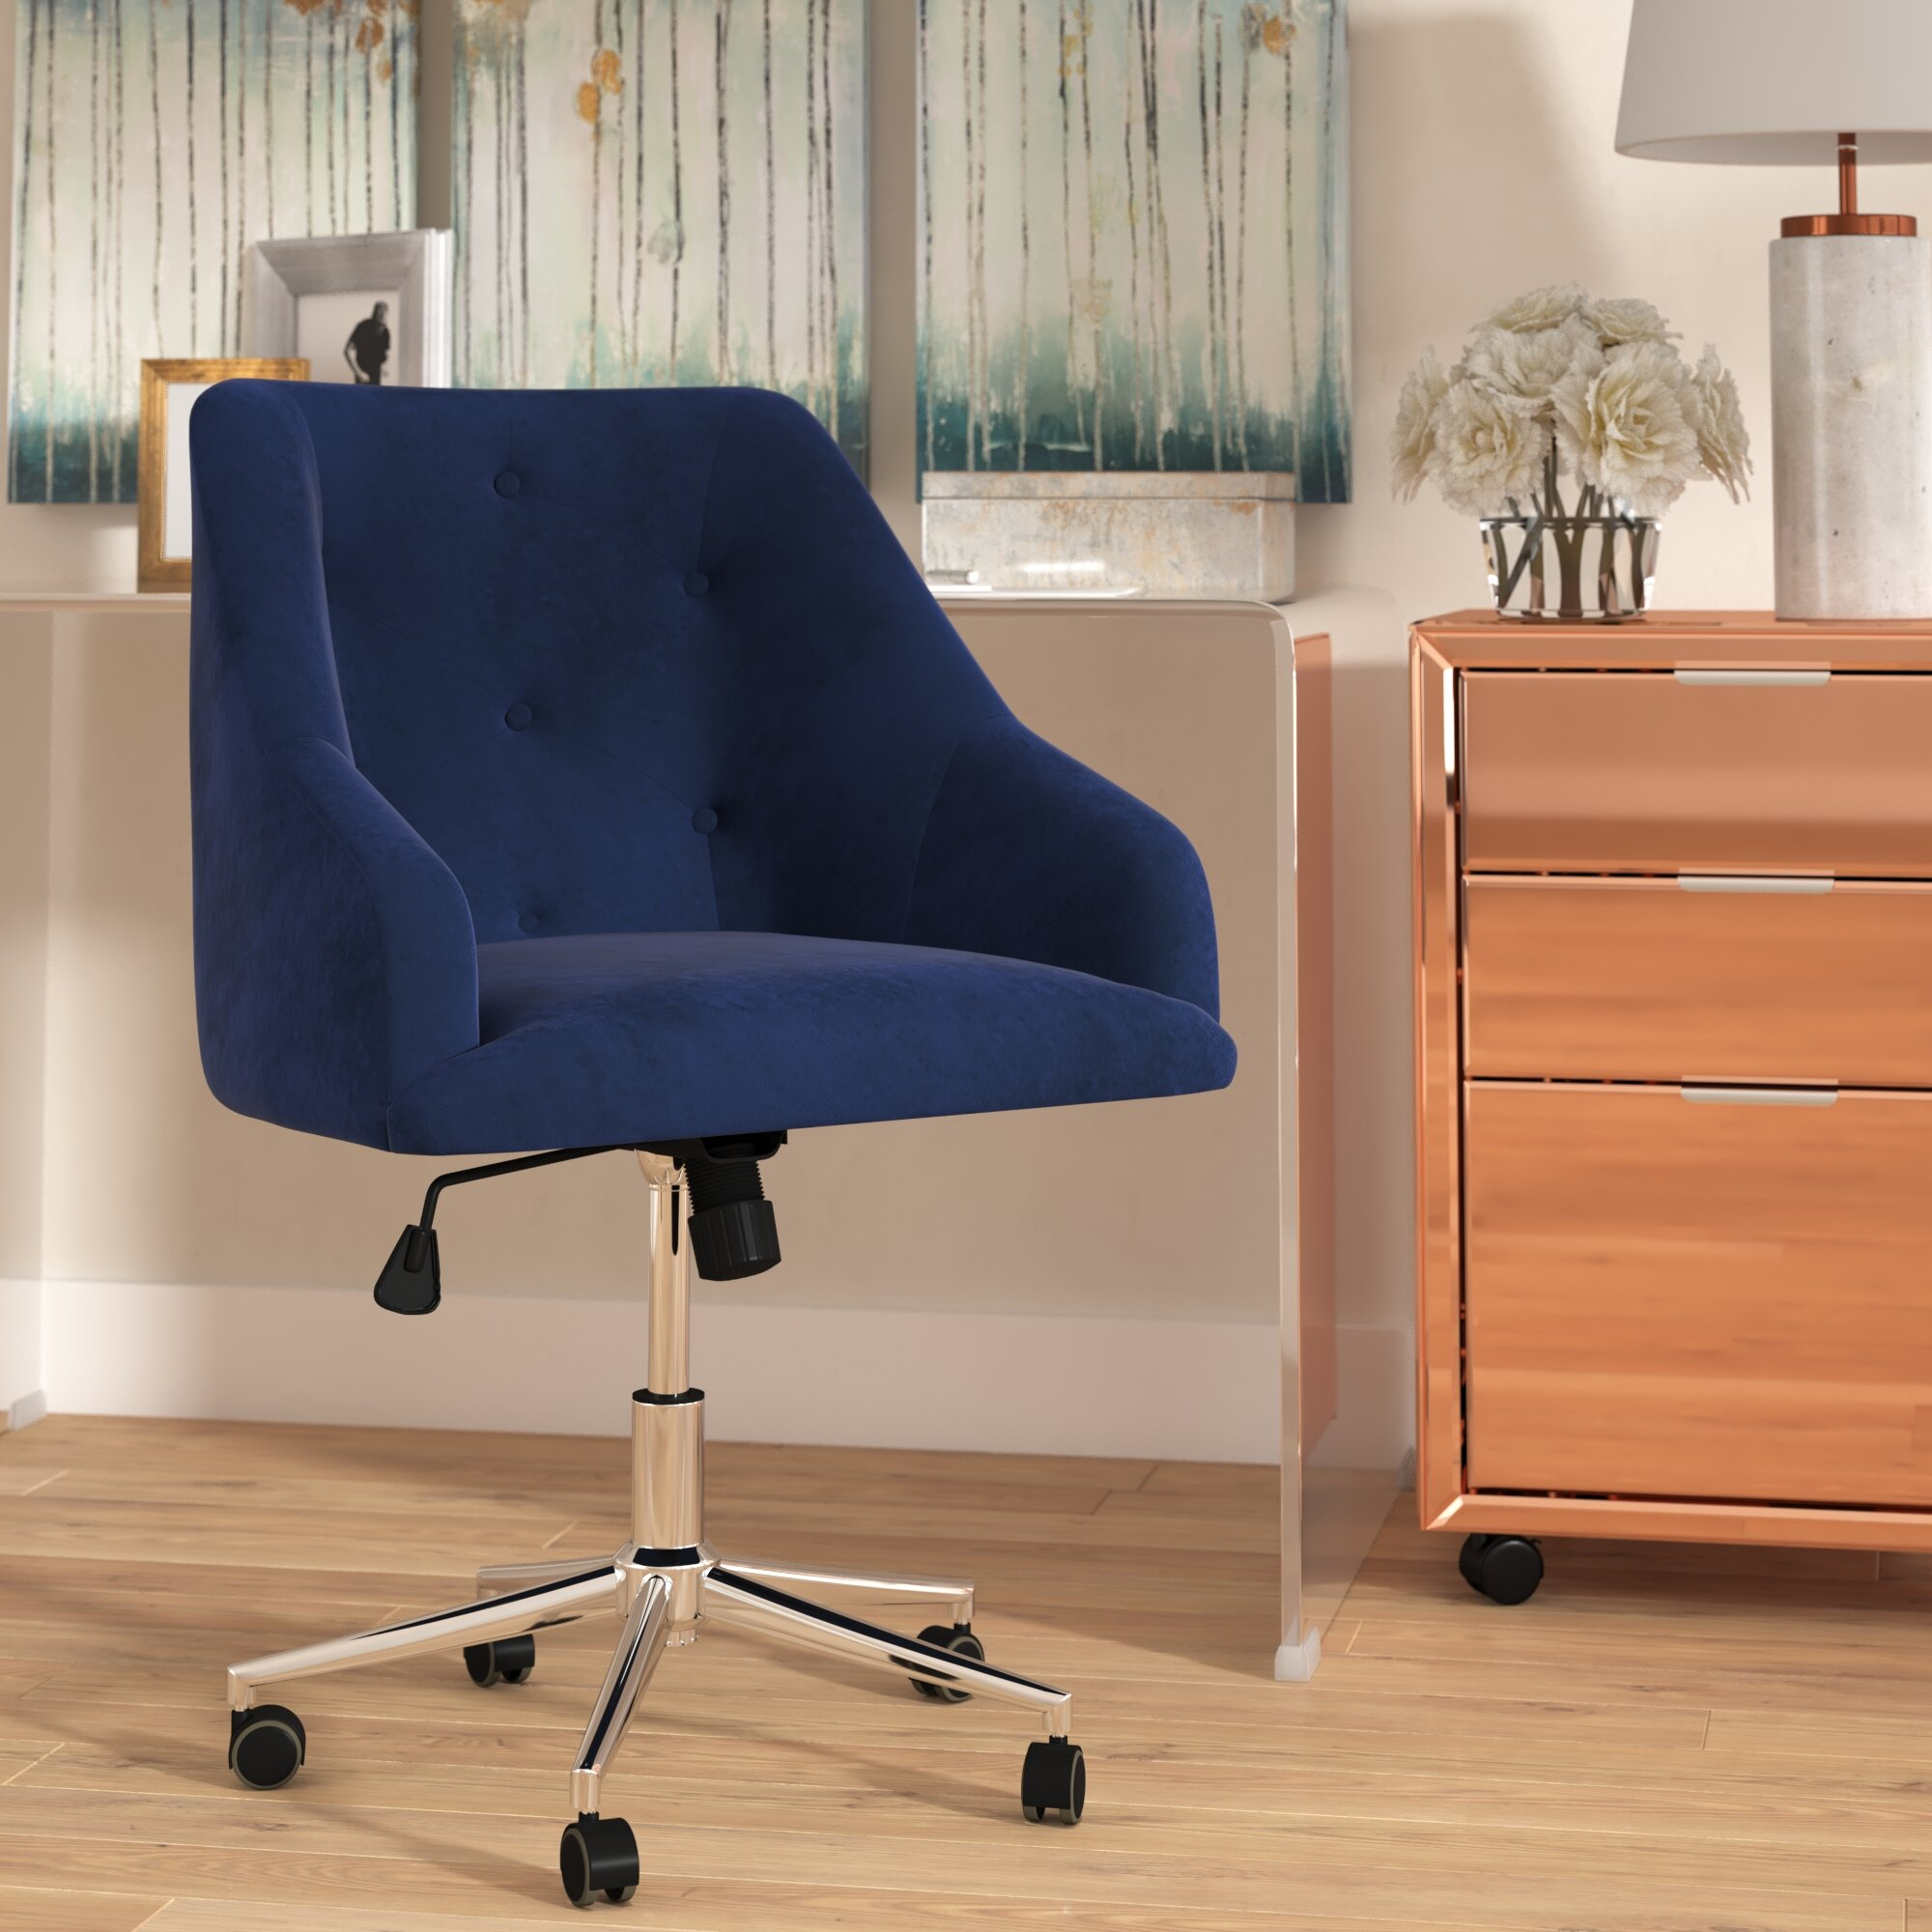 comfortable design tufted l soho swivel desk chair linen safavieh office all super blue